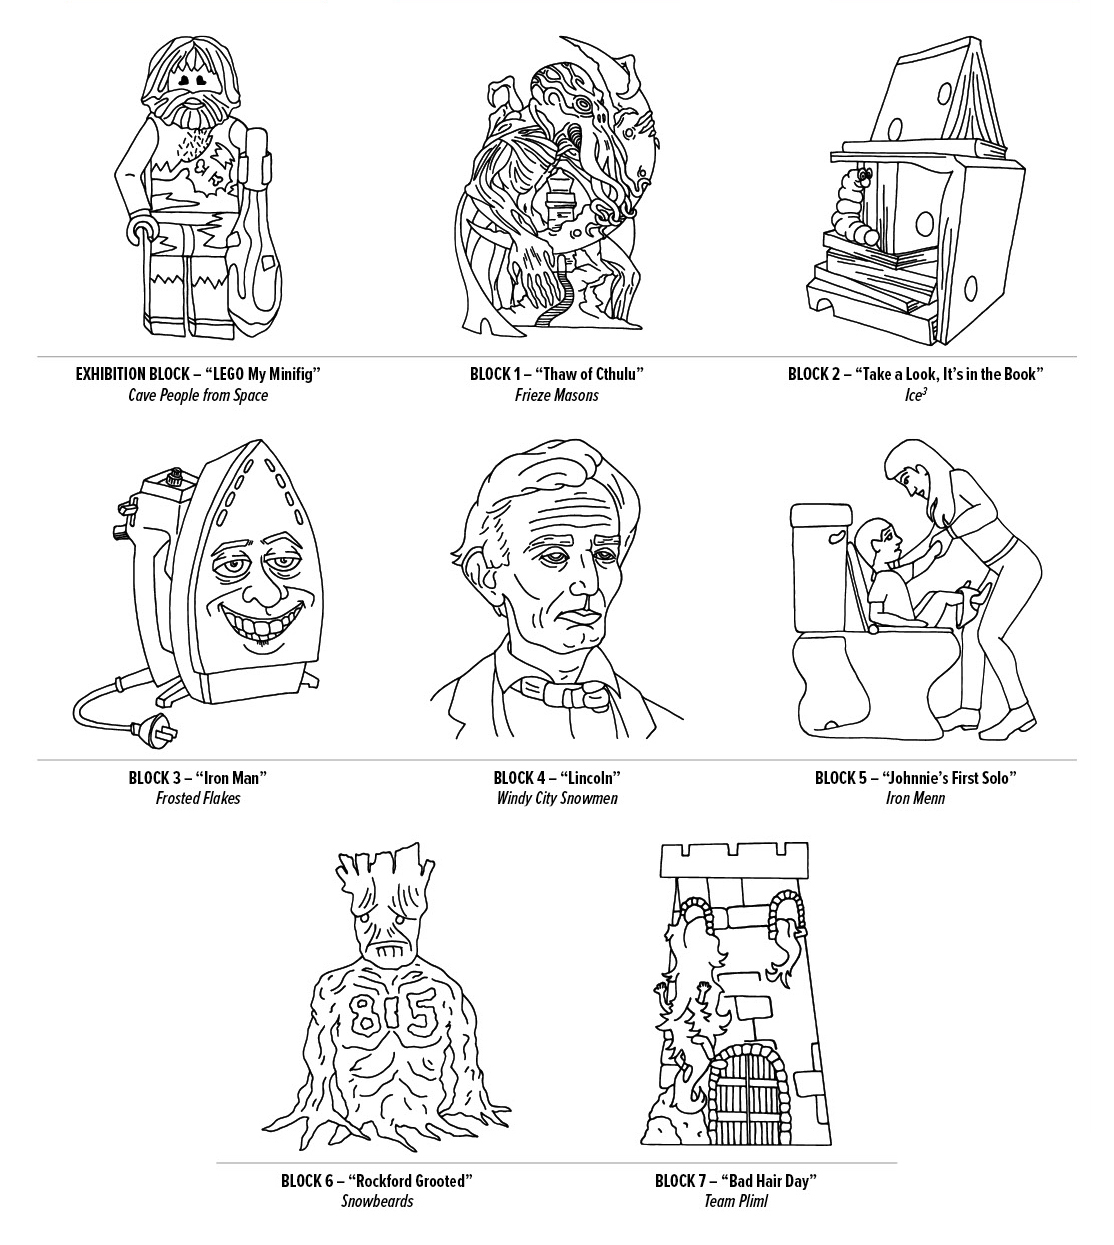 ISSC19_Sculpture_Drawings-STATE_v2.jpg